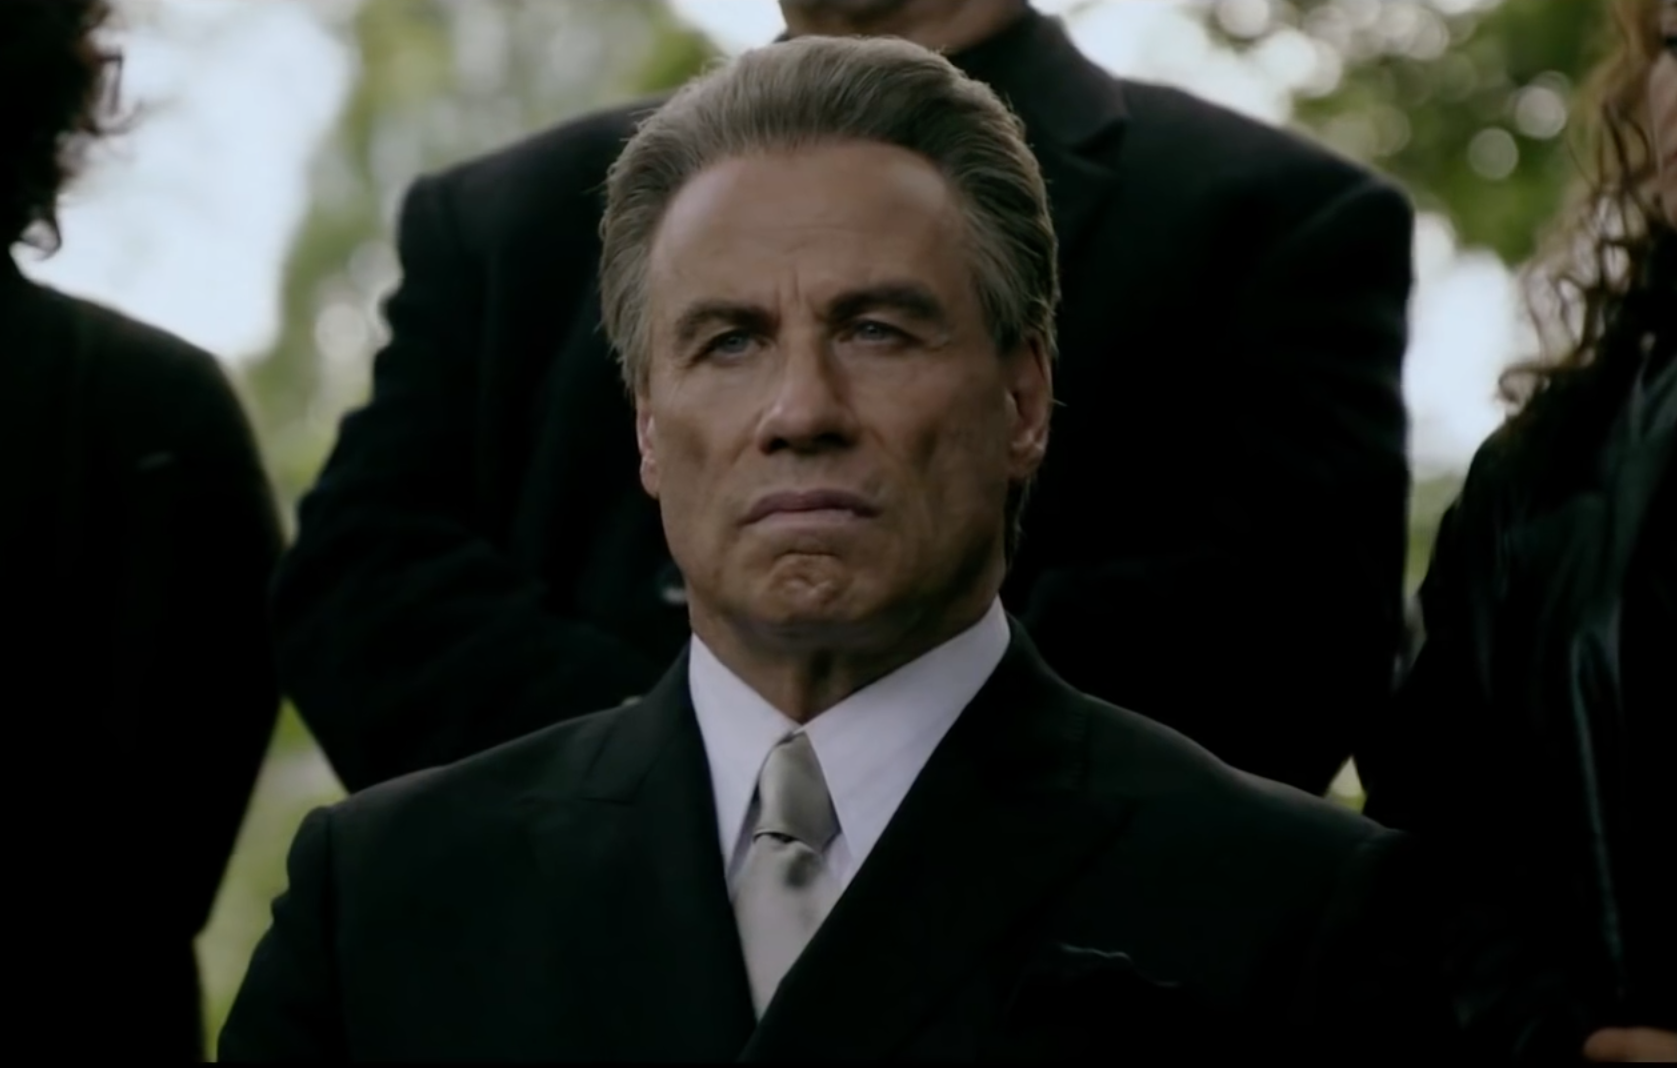 John Travolta says Gotti movie being pulled is 'fake news'